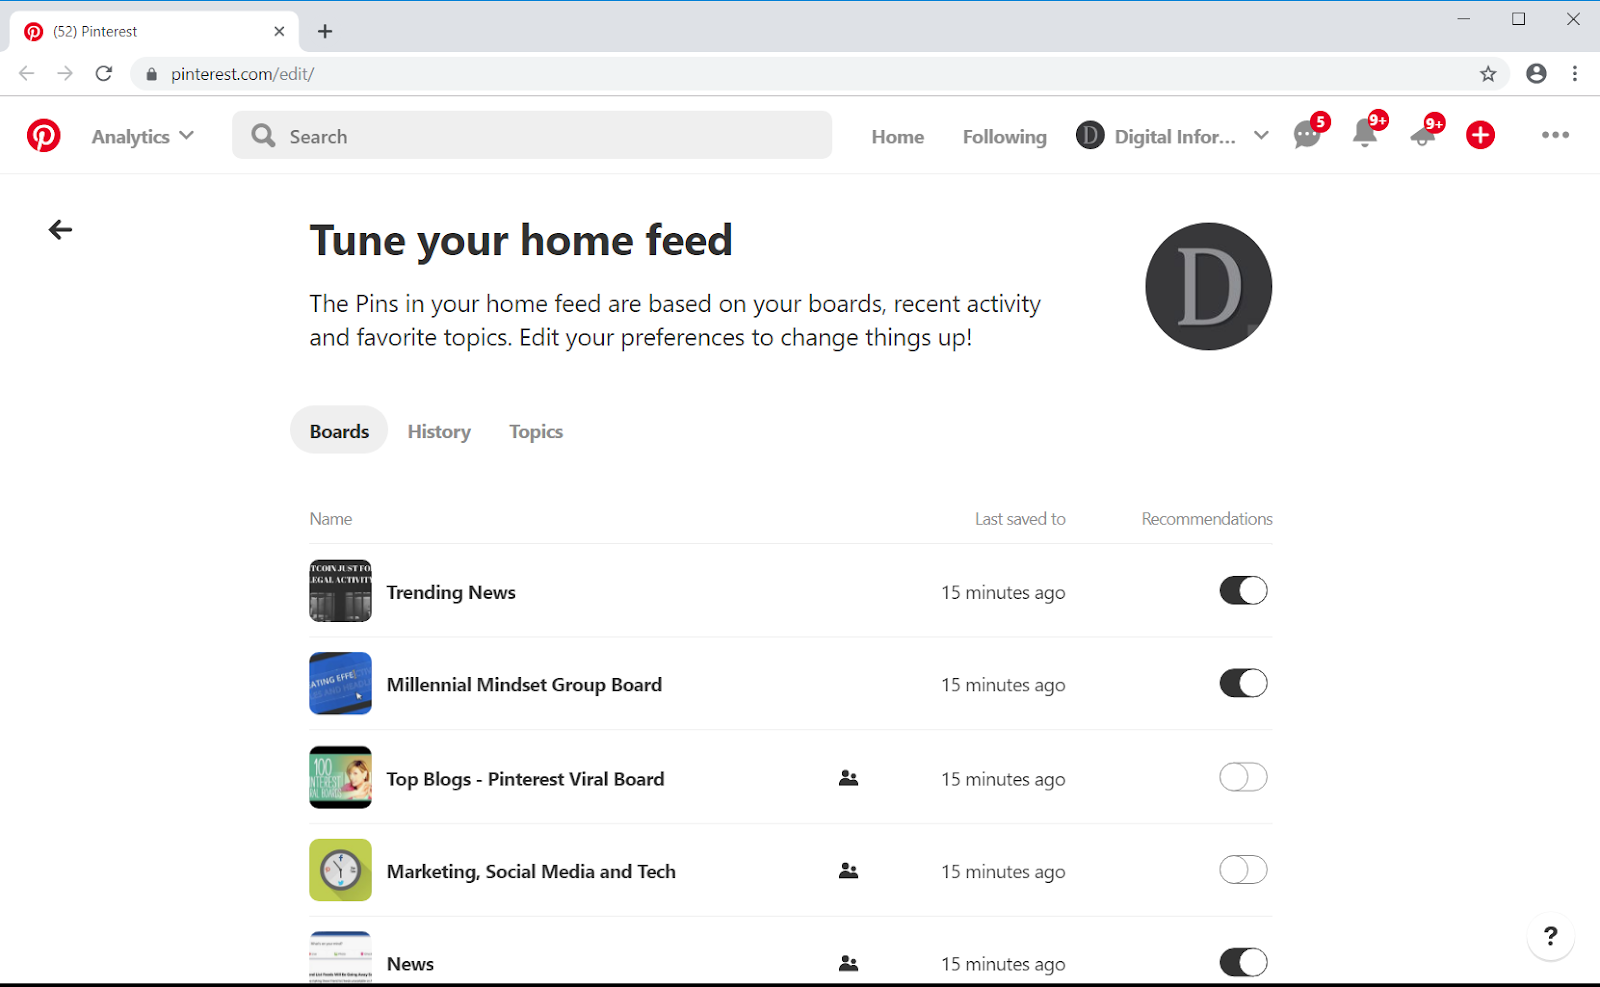 With the home feed tuner you can: Toggle home feed recommendations on and off, Flip on or off if you want to see more ideas, Receive recommendations for secret boards